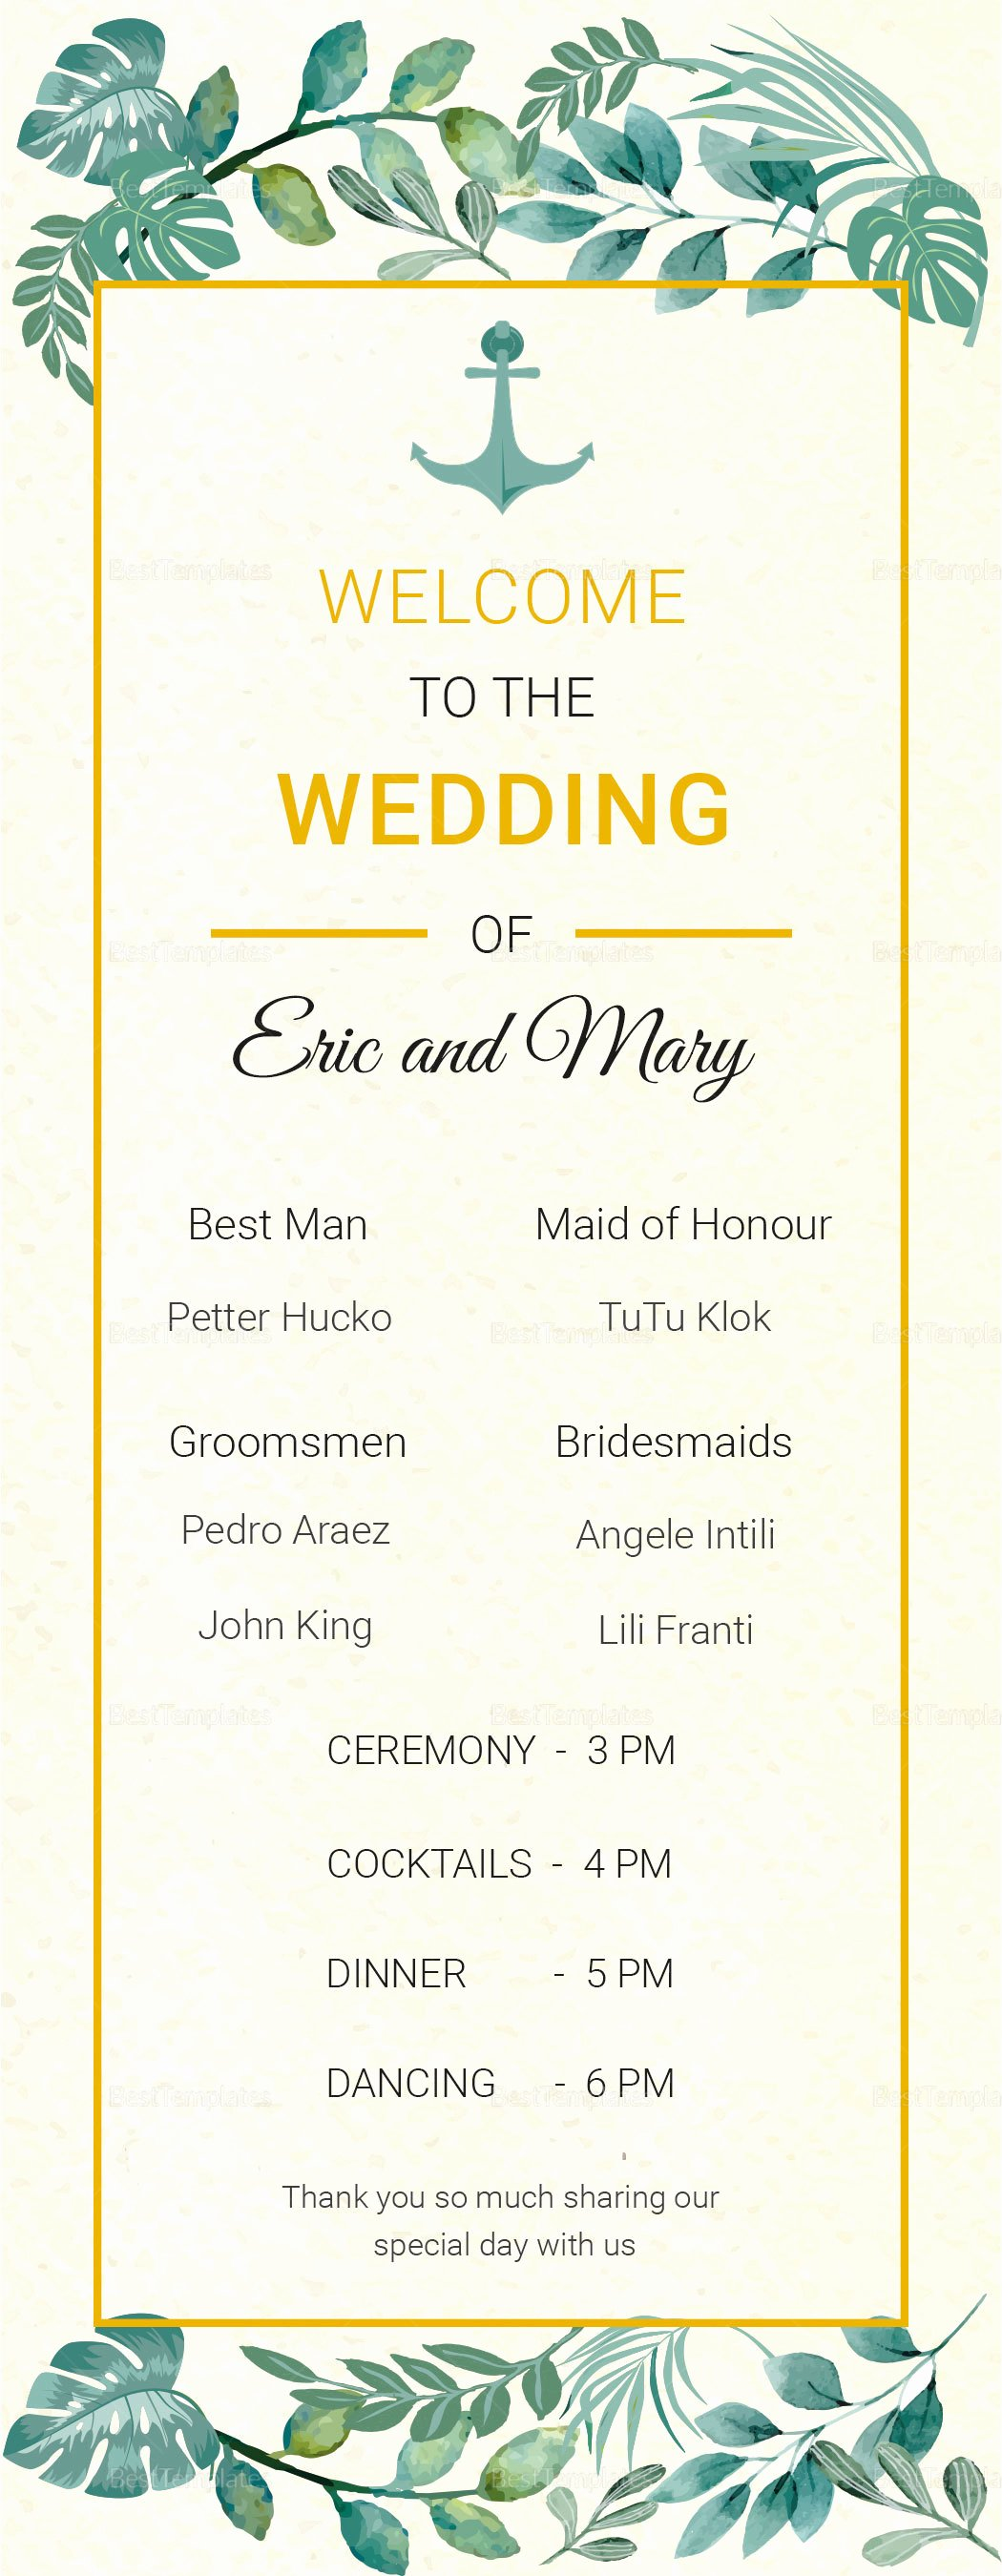 Indesign Wedding Program Template Awesome Nautical Wedding Program Card Template In Psd Word Publisher Illustrator Indesign